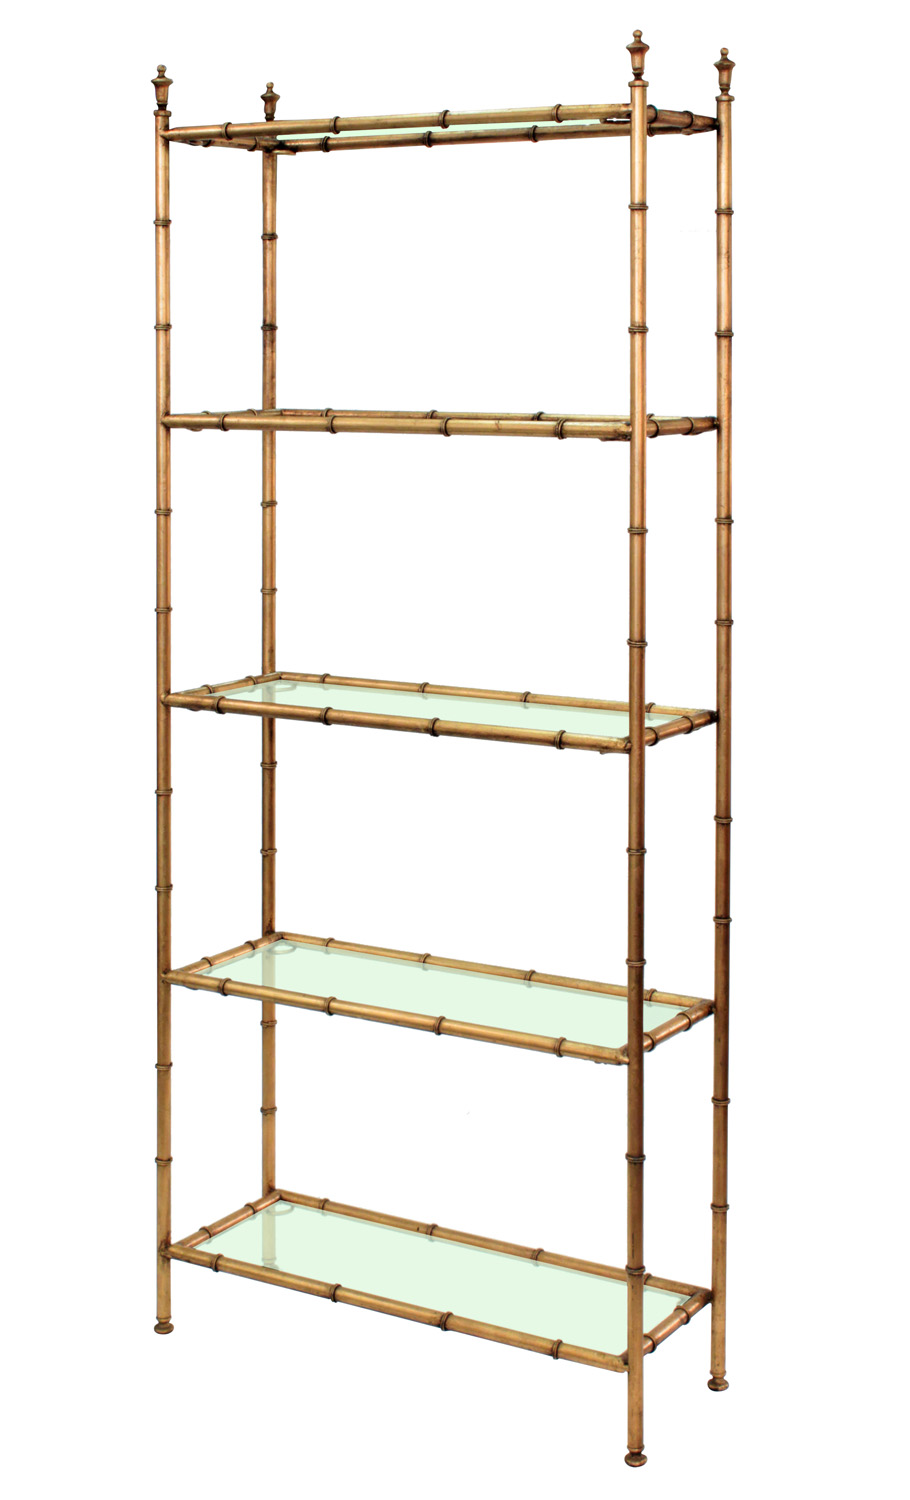 70's 95 gilded bamboo motif etagere10 hires.jpg